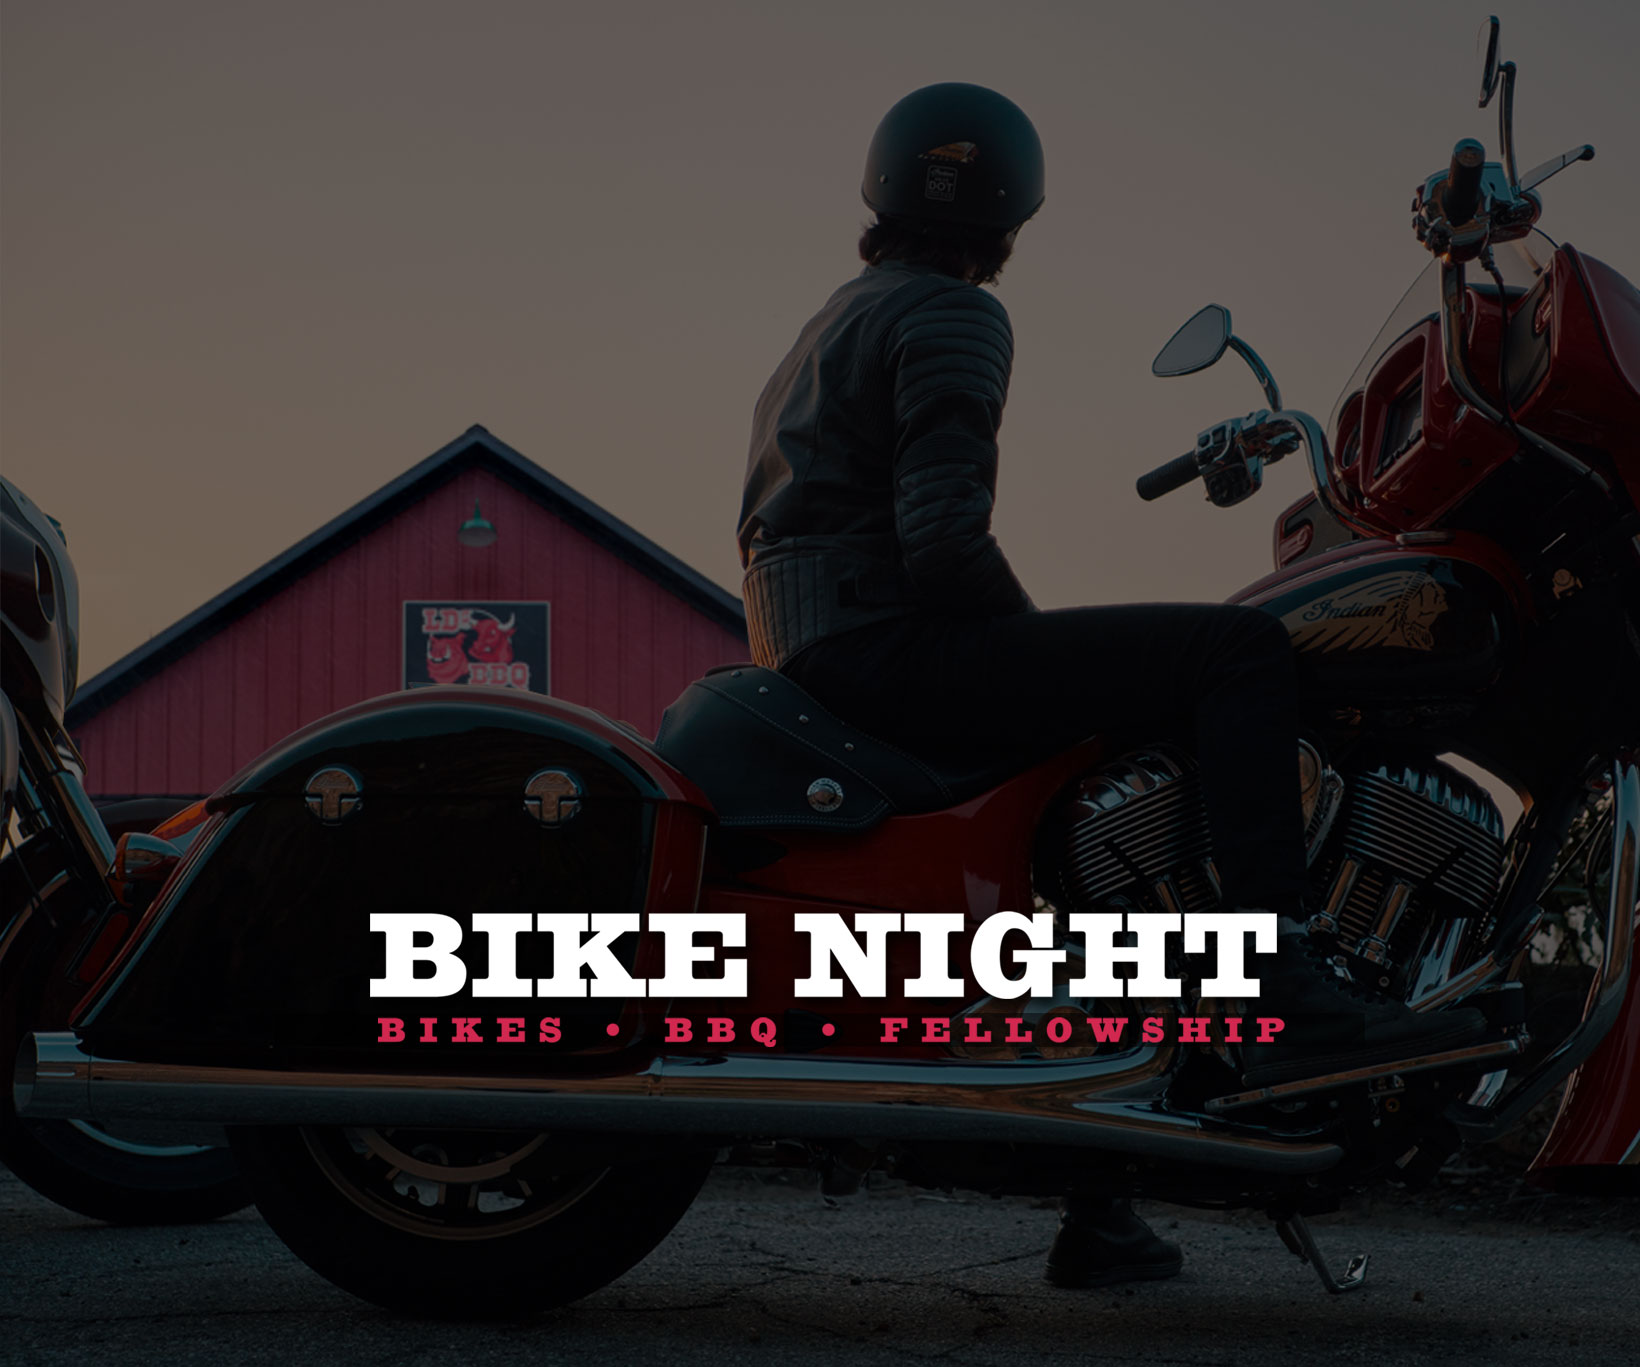 LD's BBQ Bike Night